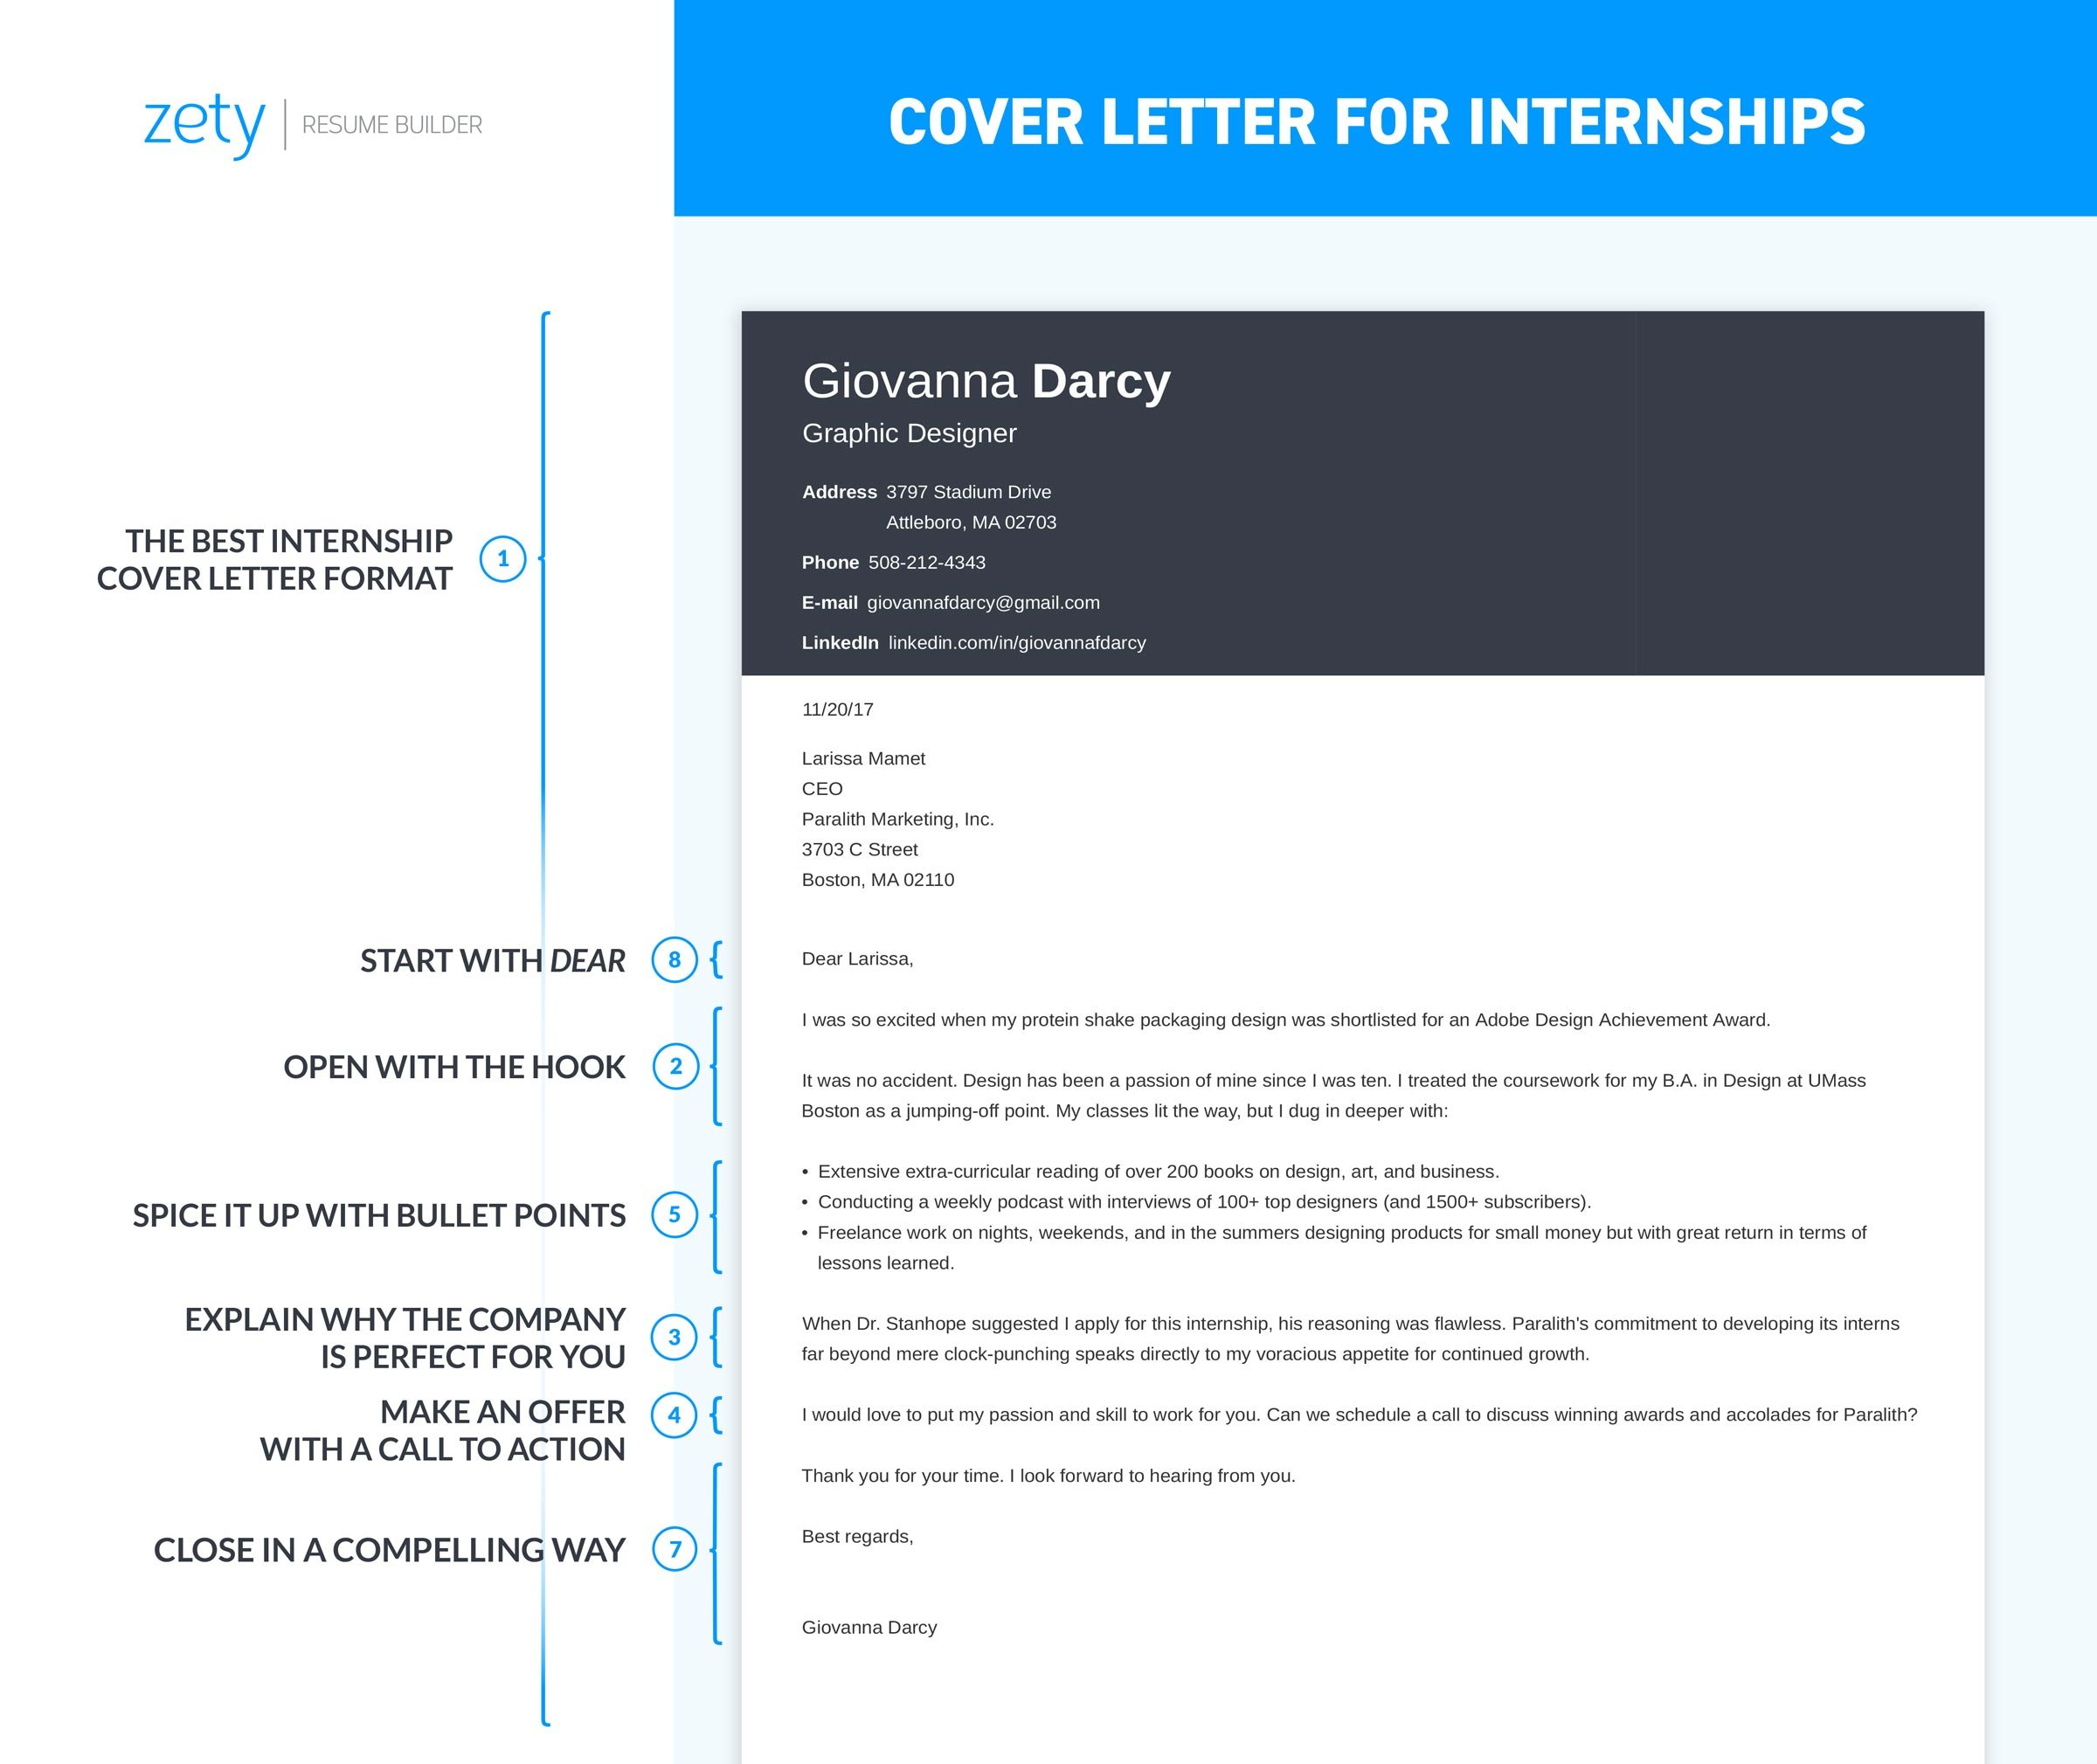 High Quality Infographic About How To Write A Cover Letter For Internship